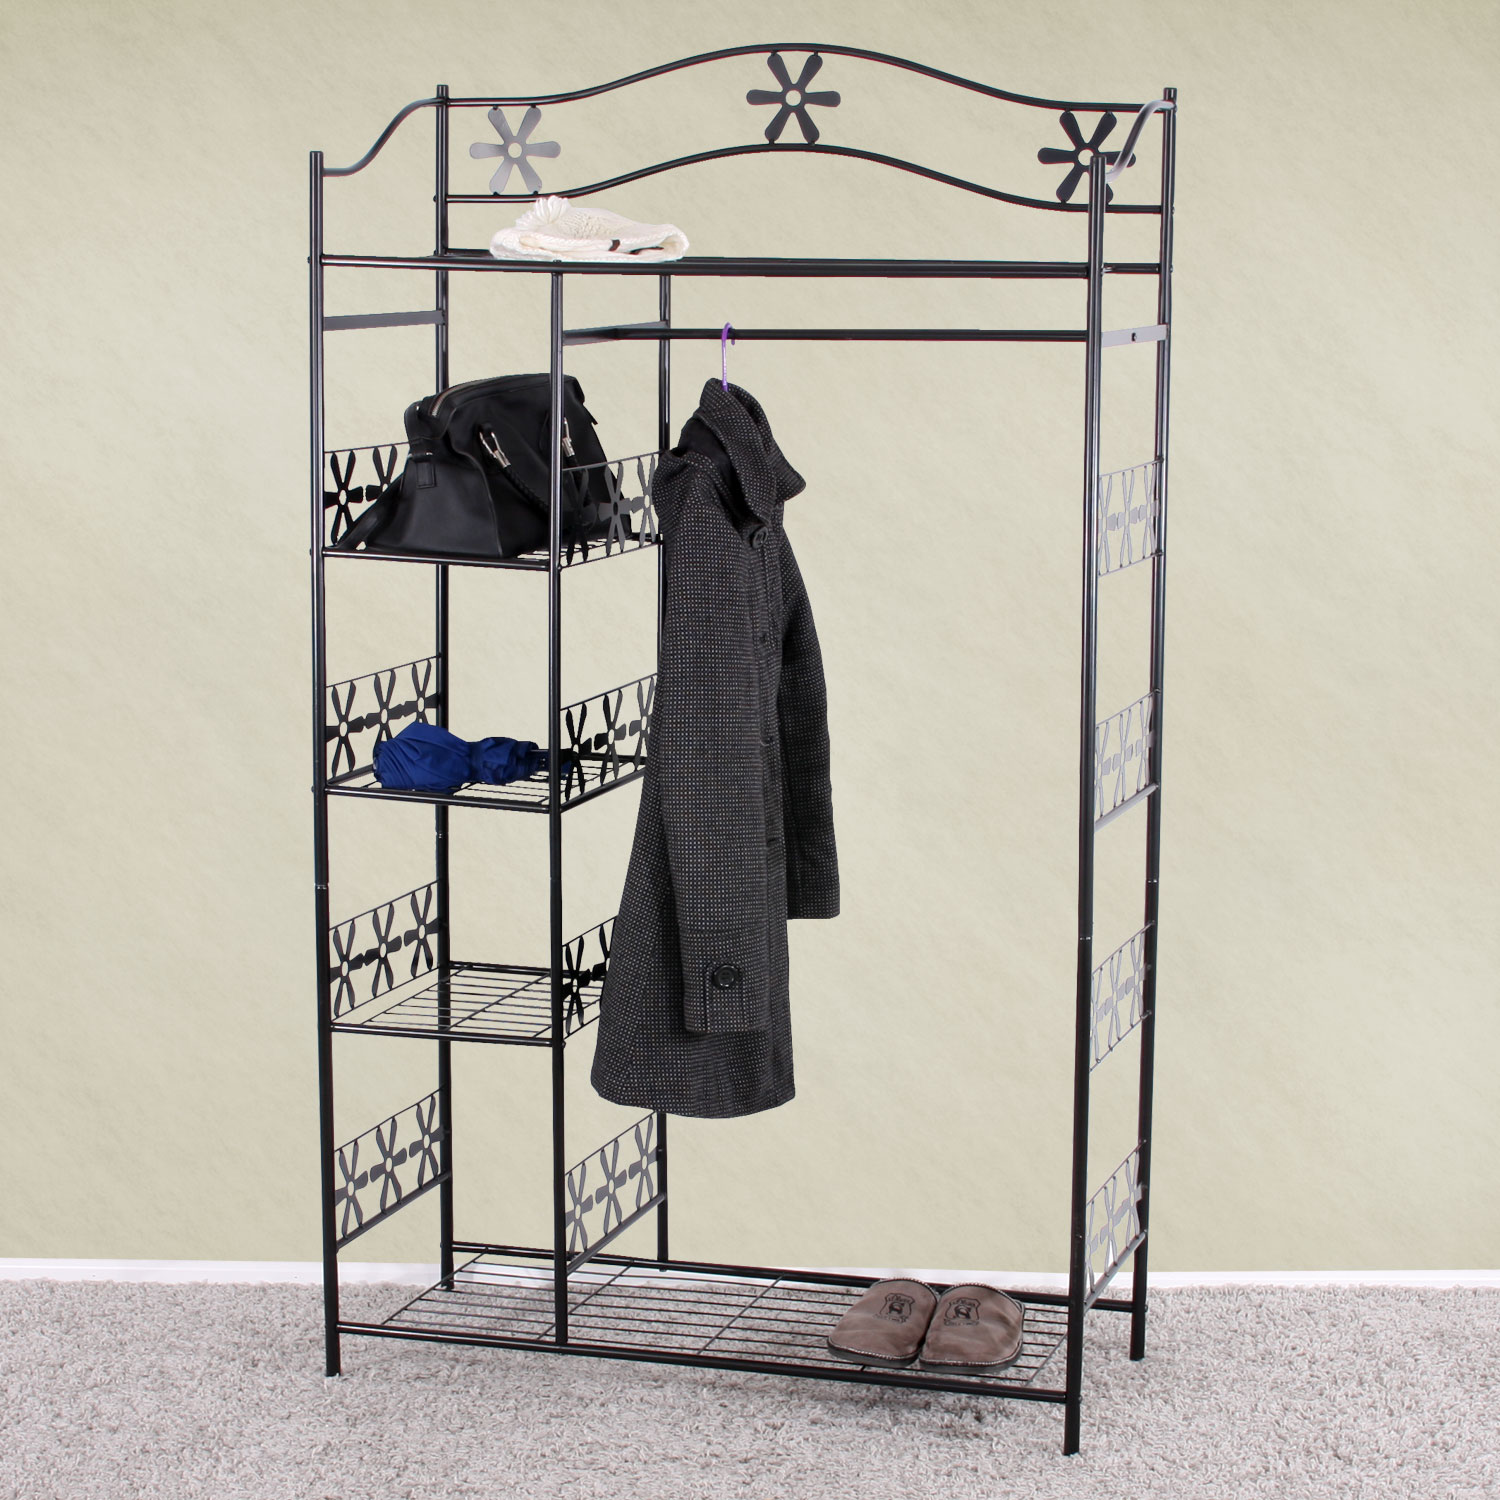 metall garderobe garderobenst nder genf metall regal 172x100x43 cm ebay. Black Bedroom Furniture Sets. Home Design Ideas